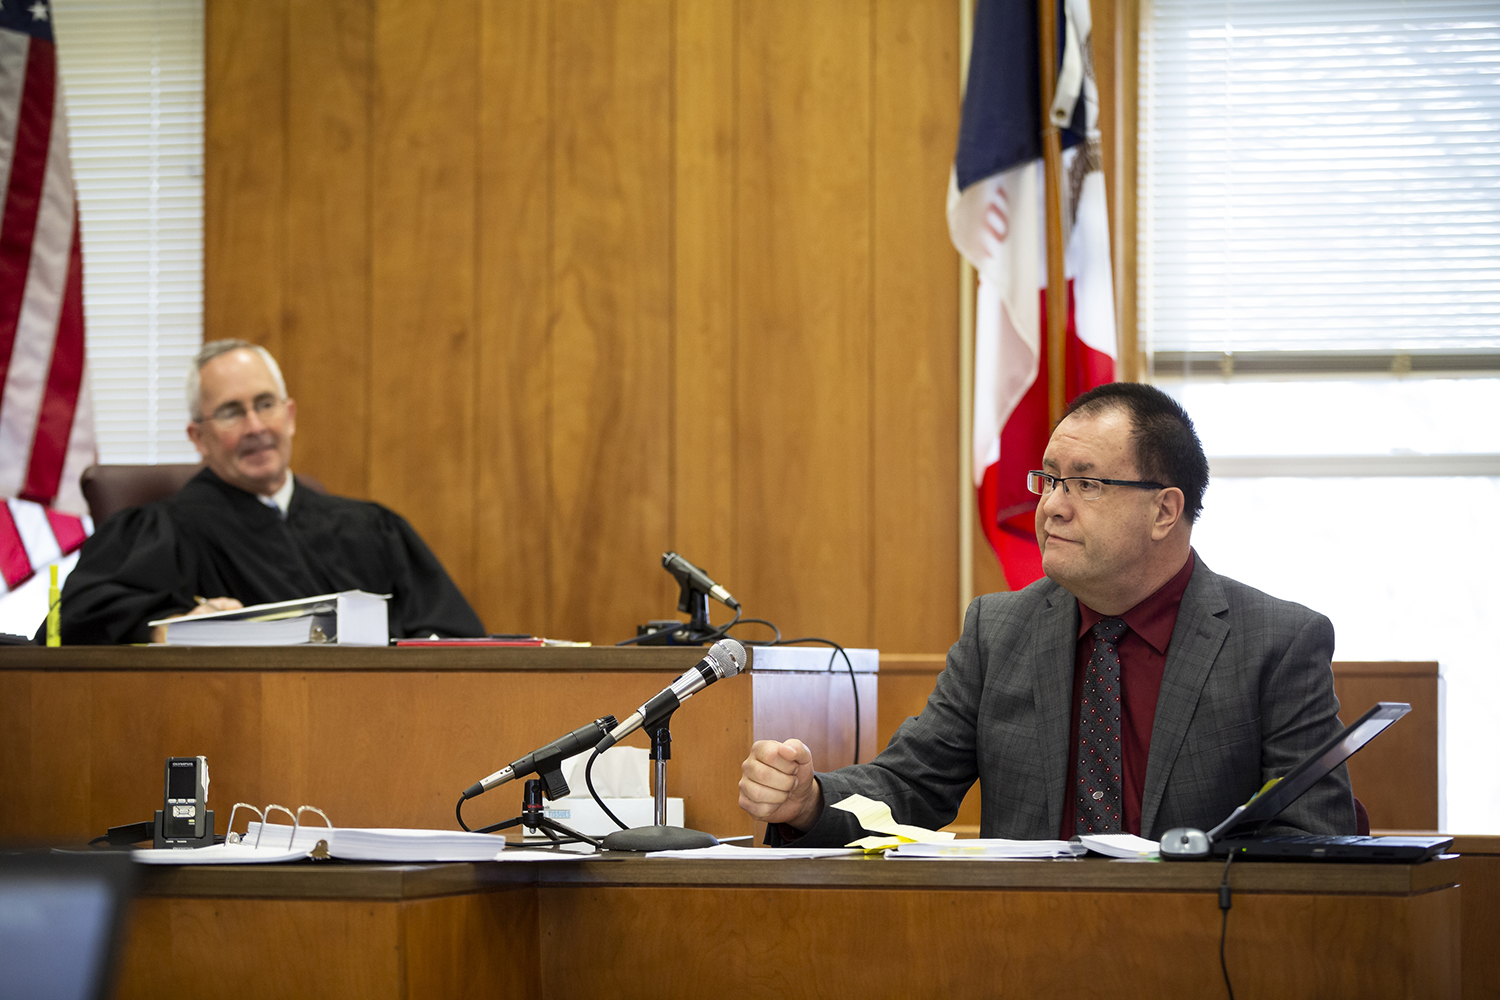 Interrogation expert Brian Leslie testifies during day two of an evidence suppression hearing at the Poweshiek County Courthouse on Thursday, Nov. 14, 2019 in Montezuma.